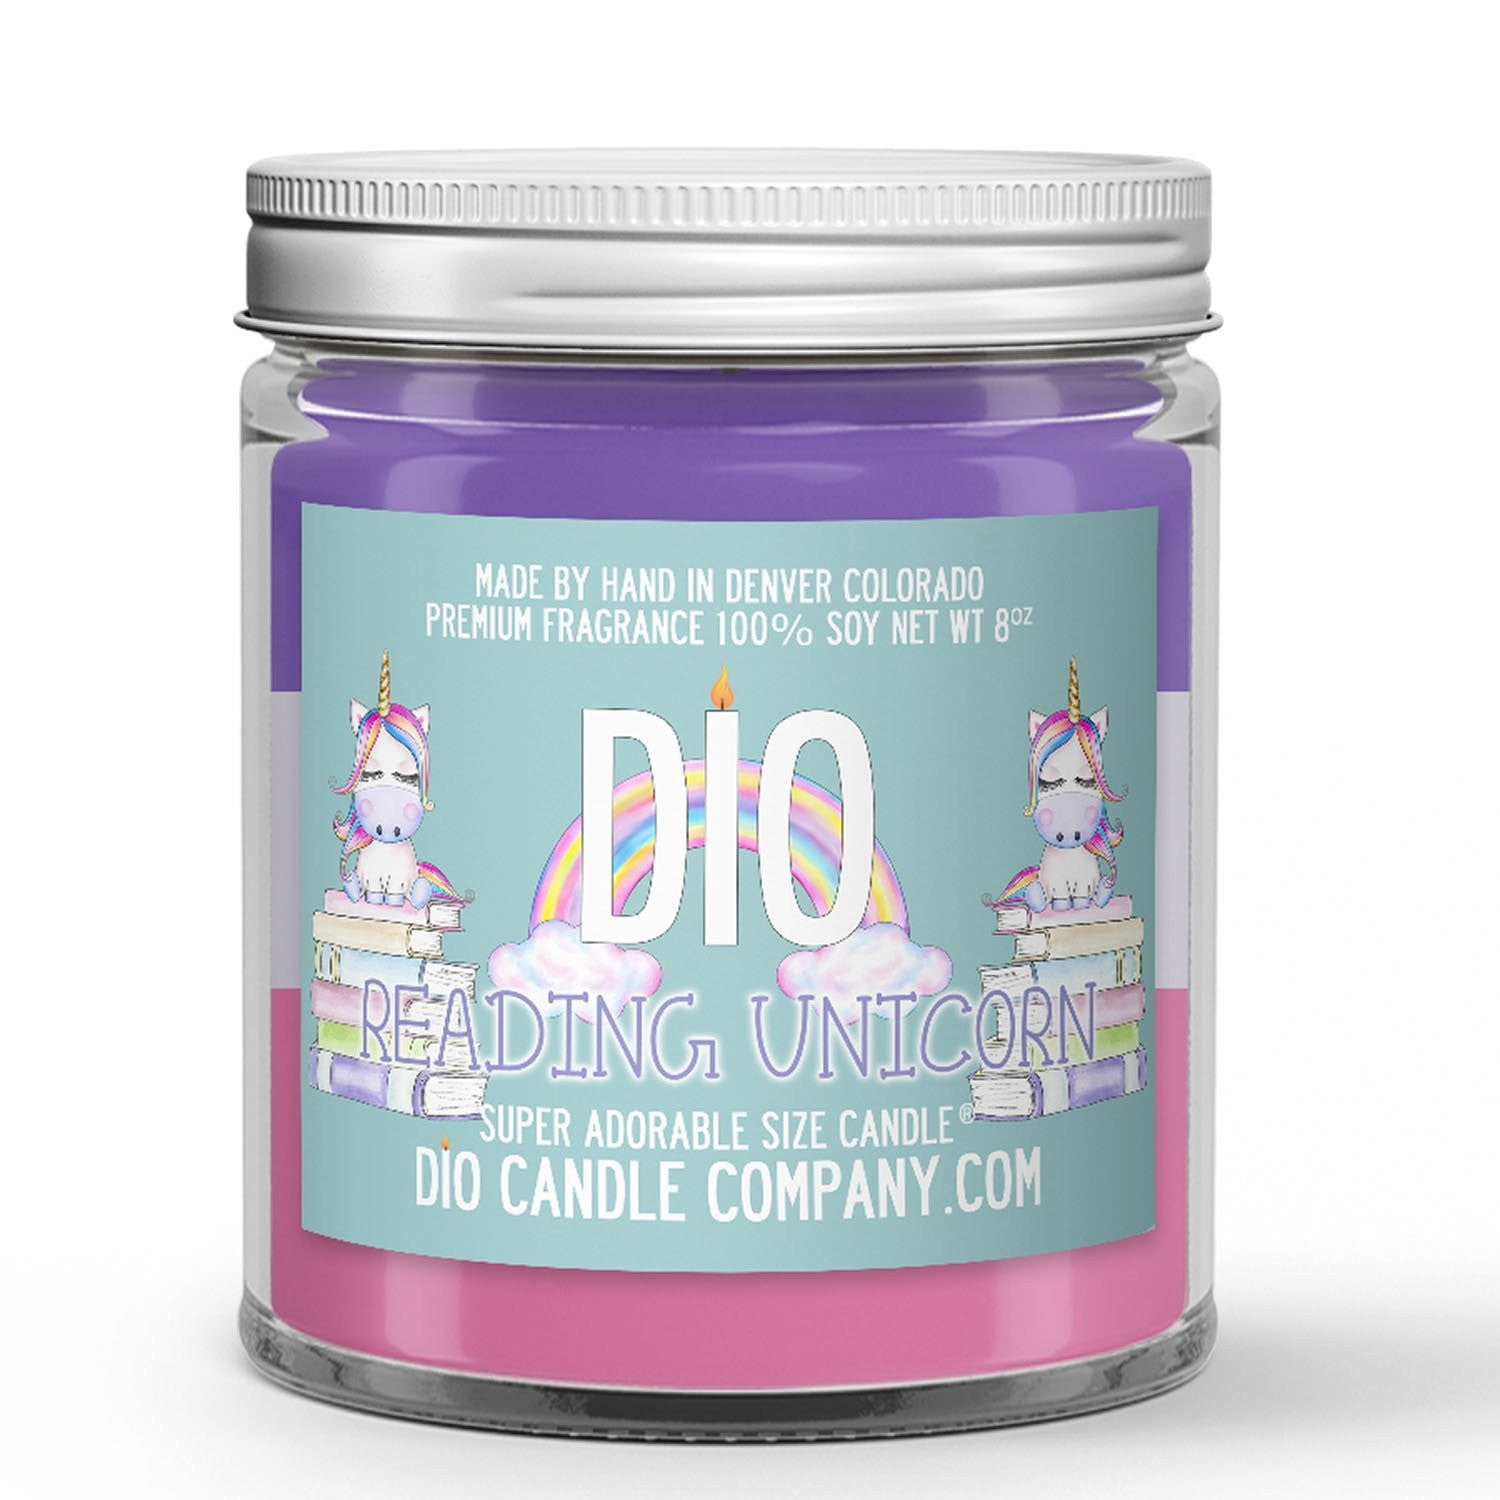 Reading Unicorn Candle - Watermelon Cotton Candy - 4oz Very Adorable Size Candle® - Dio Candle Company